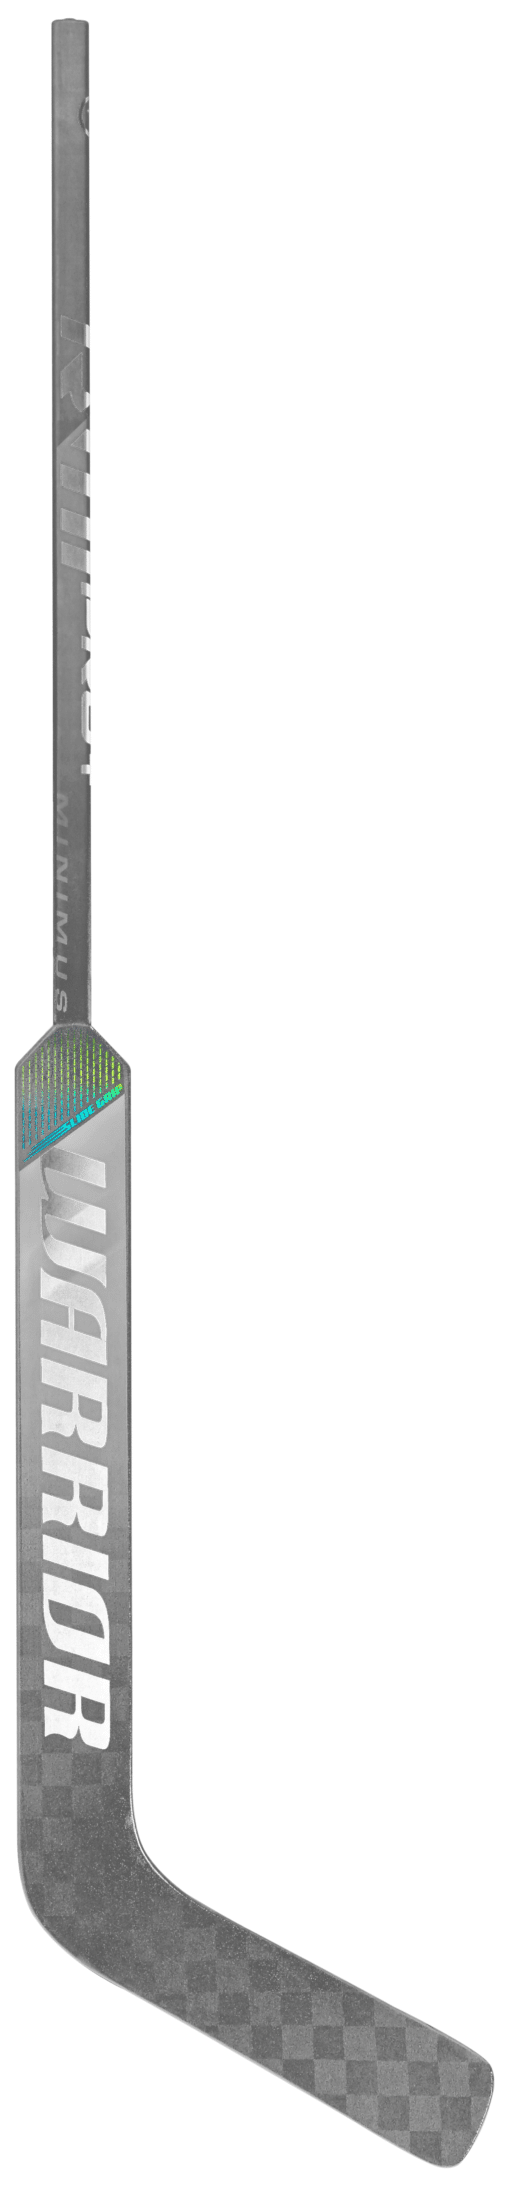 Warrior Goalie Stick Ritual M1 Pro+ Intermediate 2